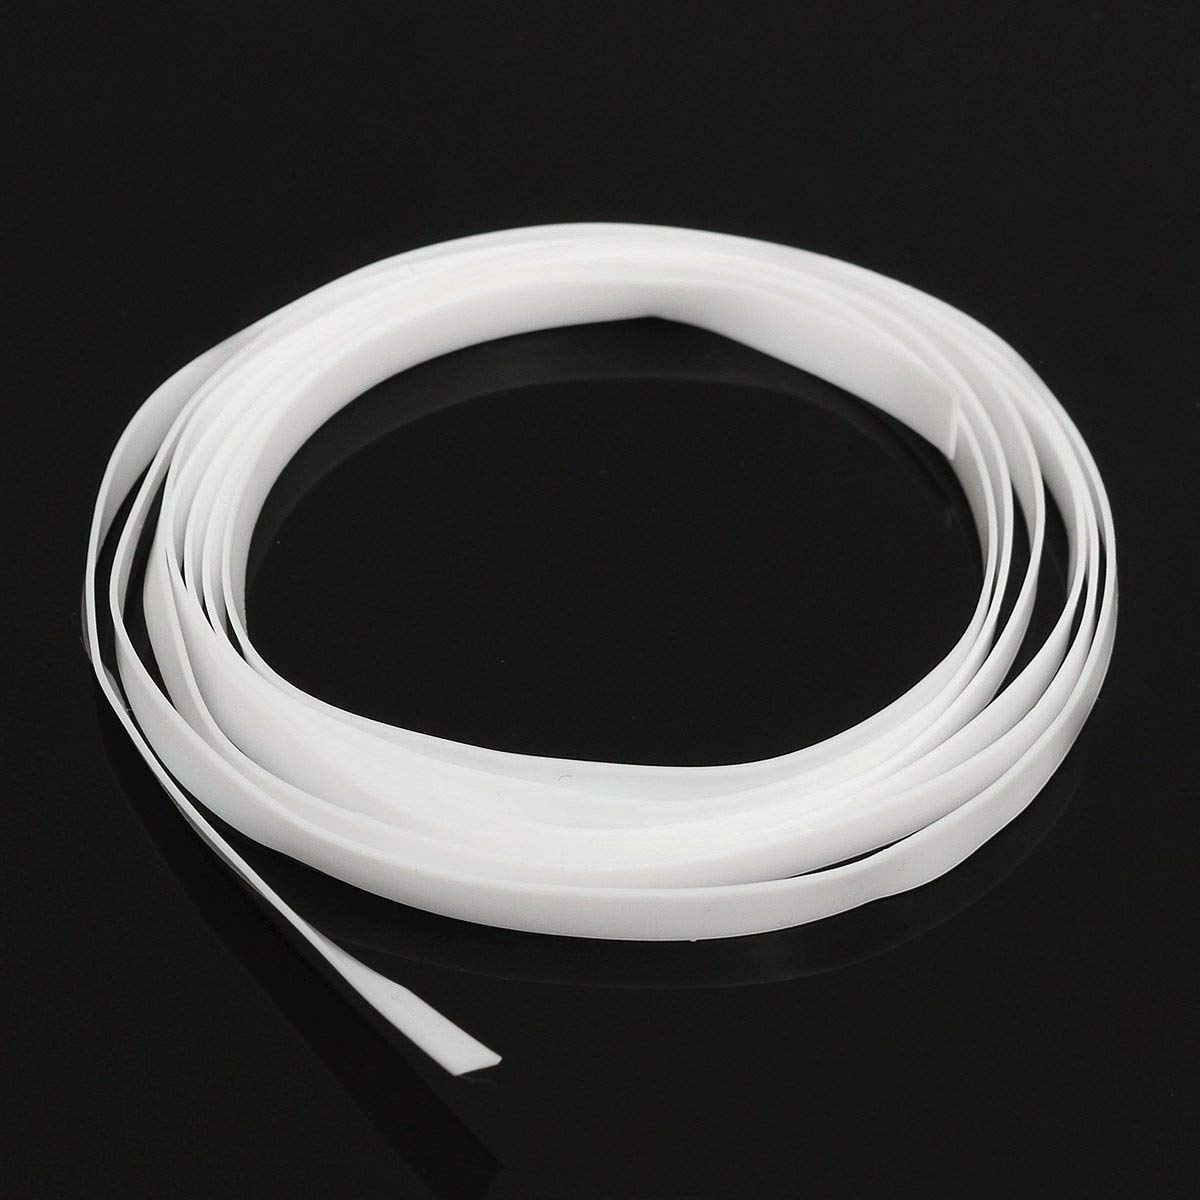 Cover To Samsung Galaxy S8 Plus - 5 Mm White Plotter Blade Cutting Strip For Cutting Vinyl Cutter For All 5mm Bead Cutting Plotter 140cm 1.4m 1400mm ...